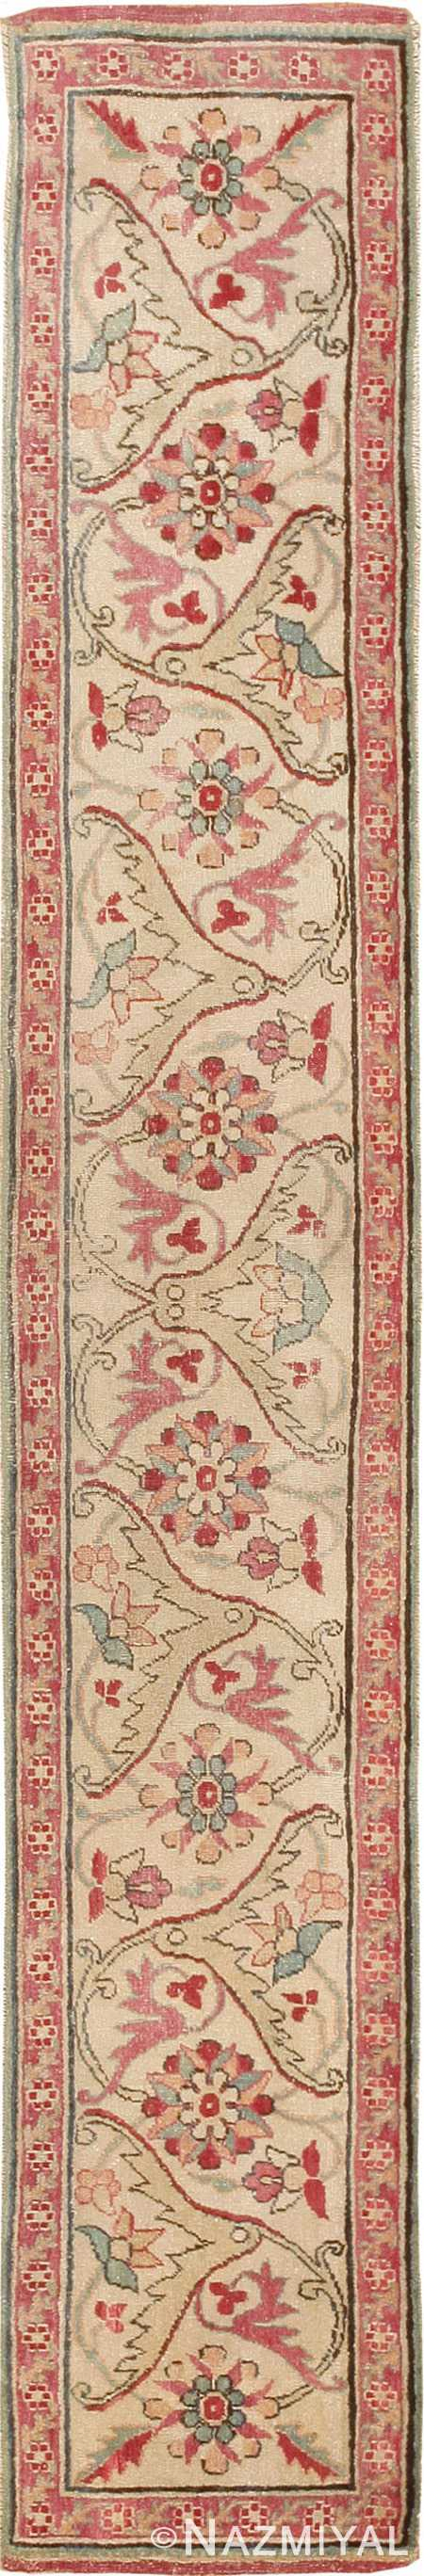 Antique Persian Khorassan Sampler Rug #1595 by Nazmiyal Antique Rugs